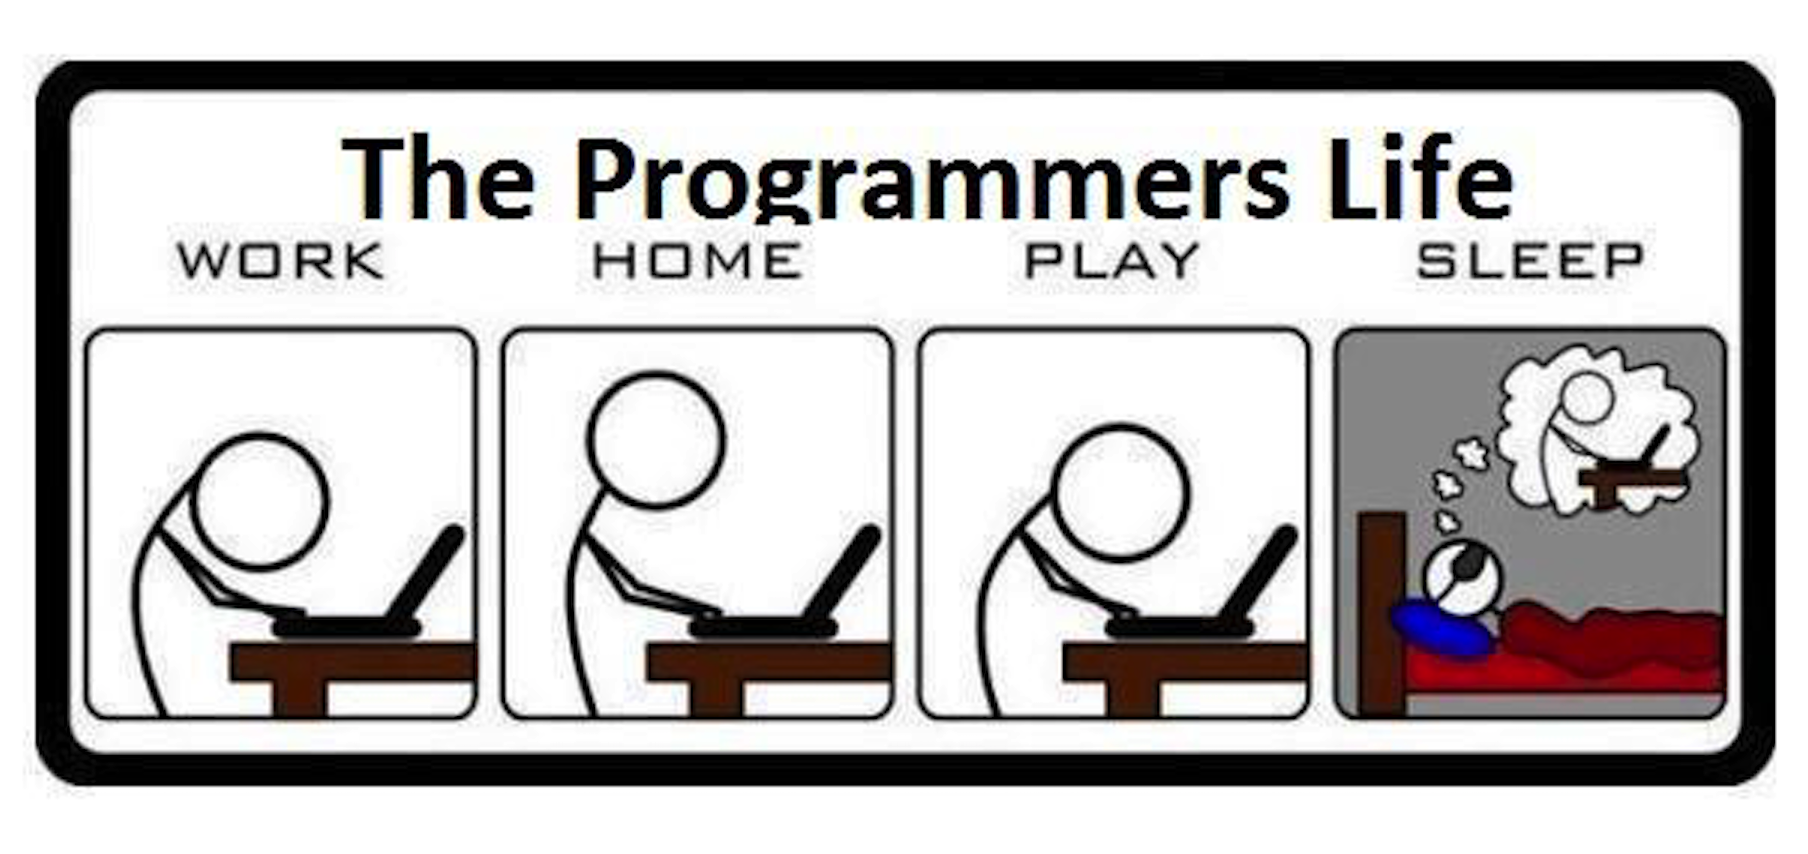 The Programmer's Life